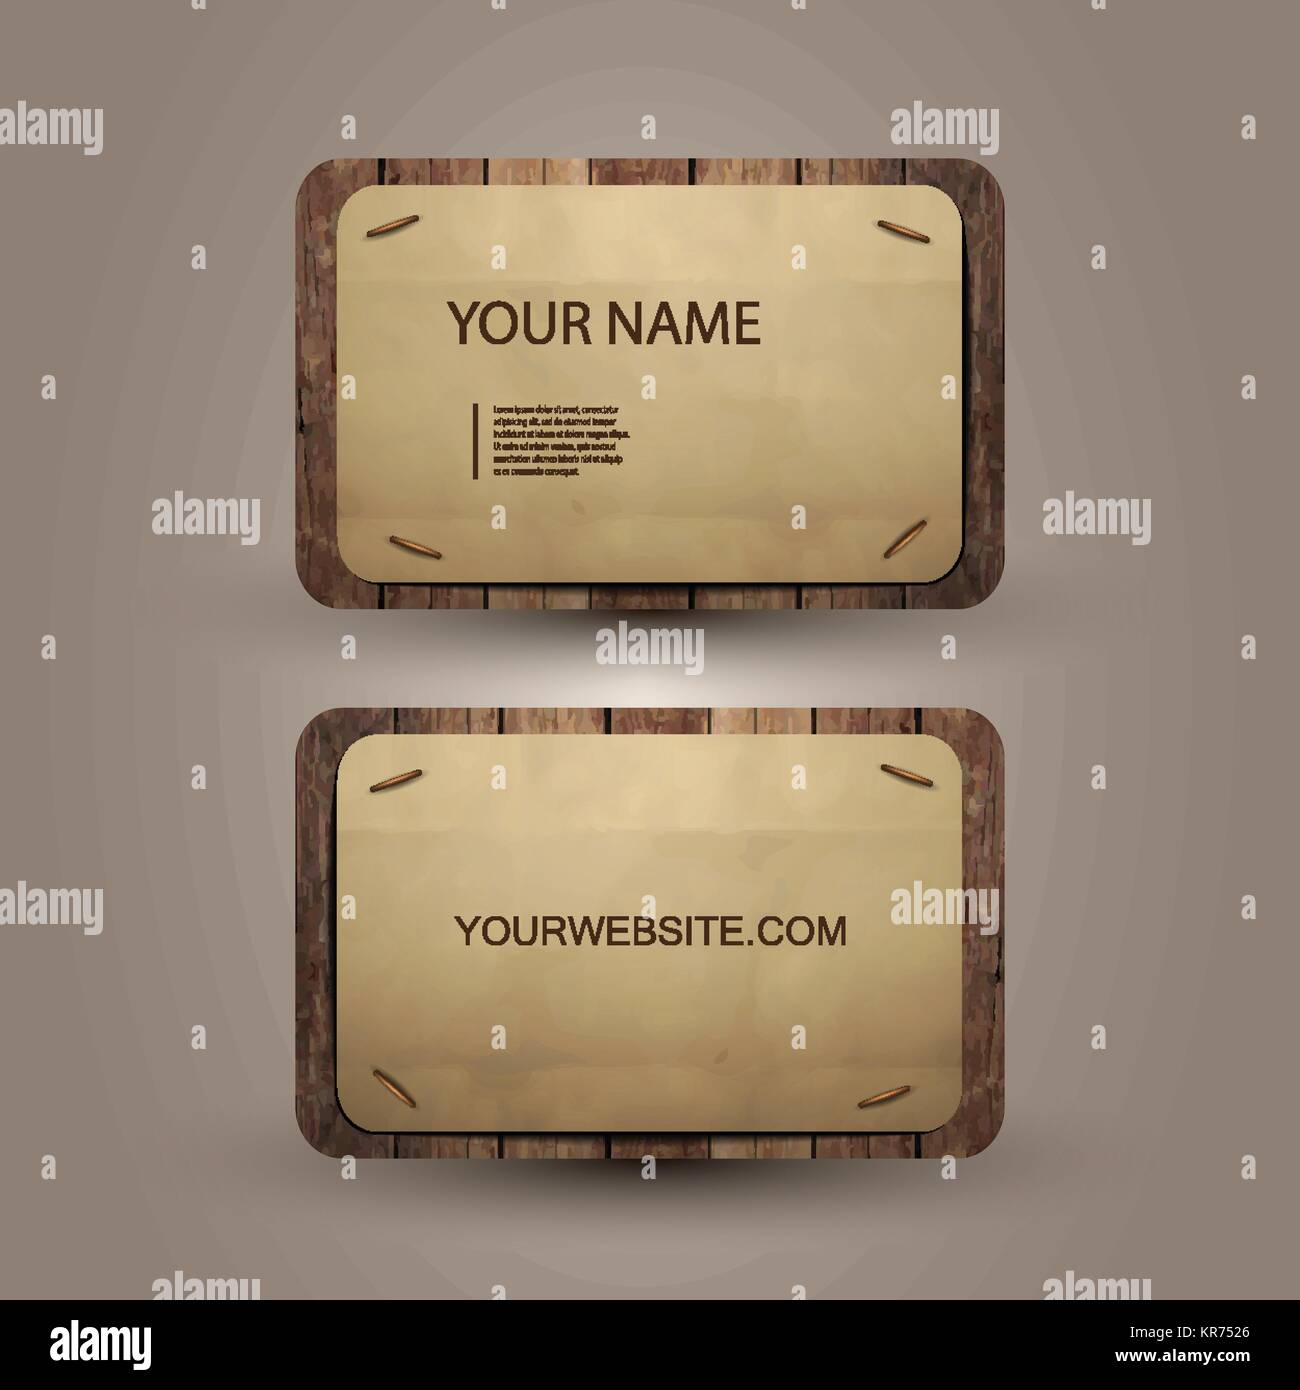 Abstract Brown Business Card Template Design with Wooden Background ...